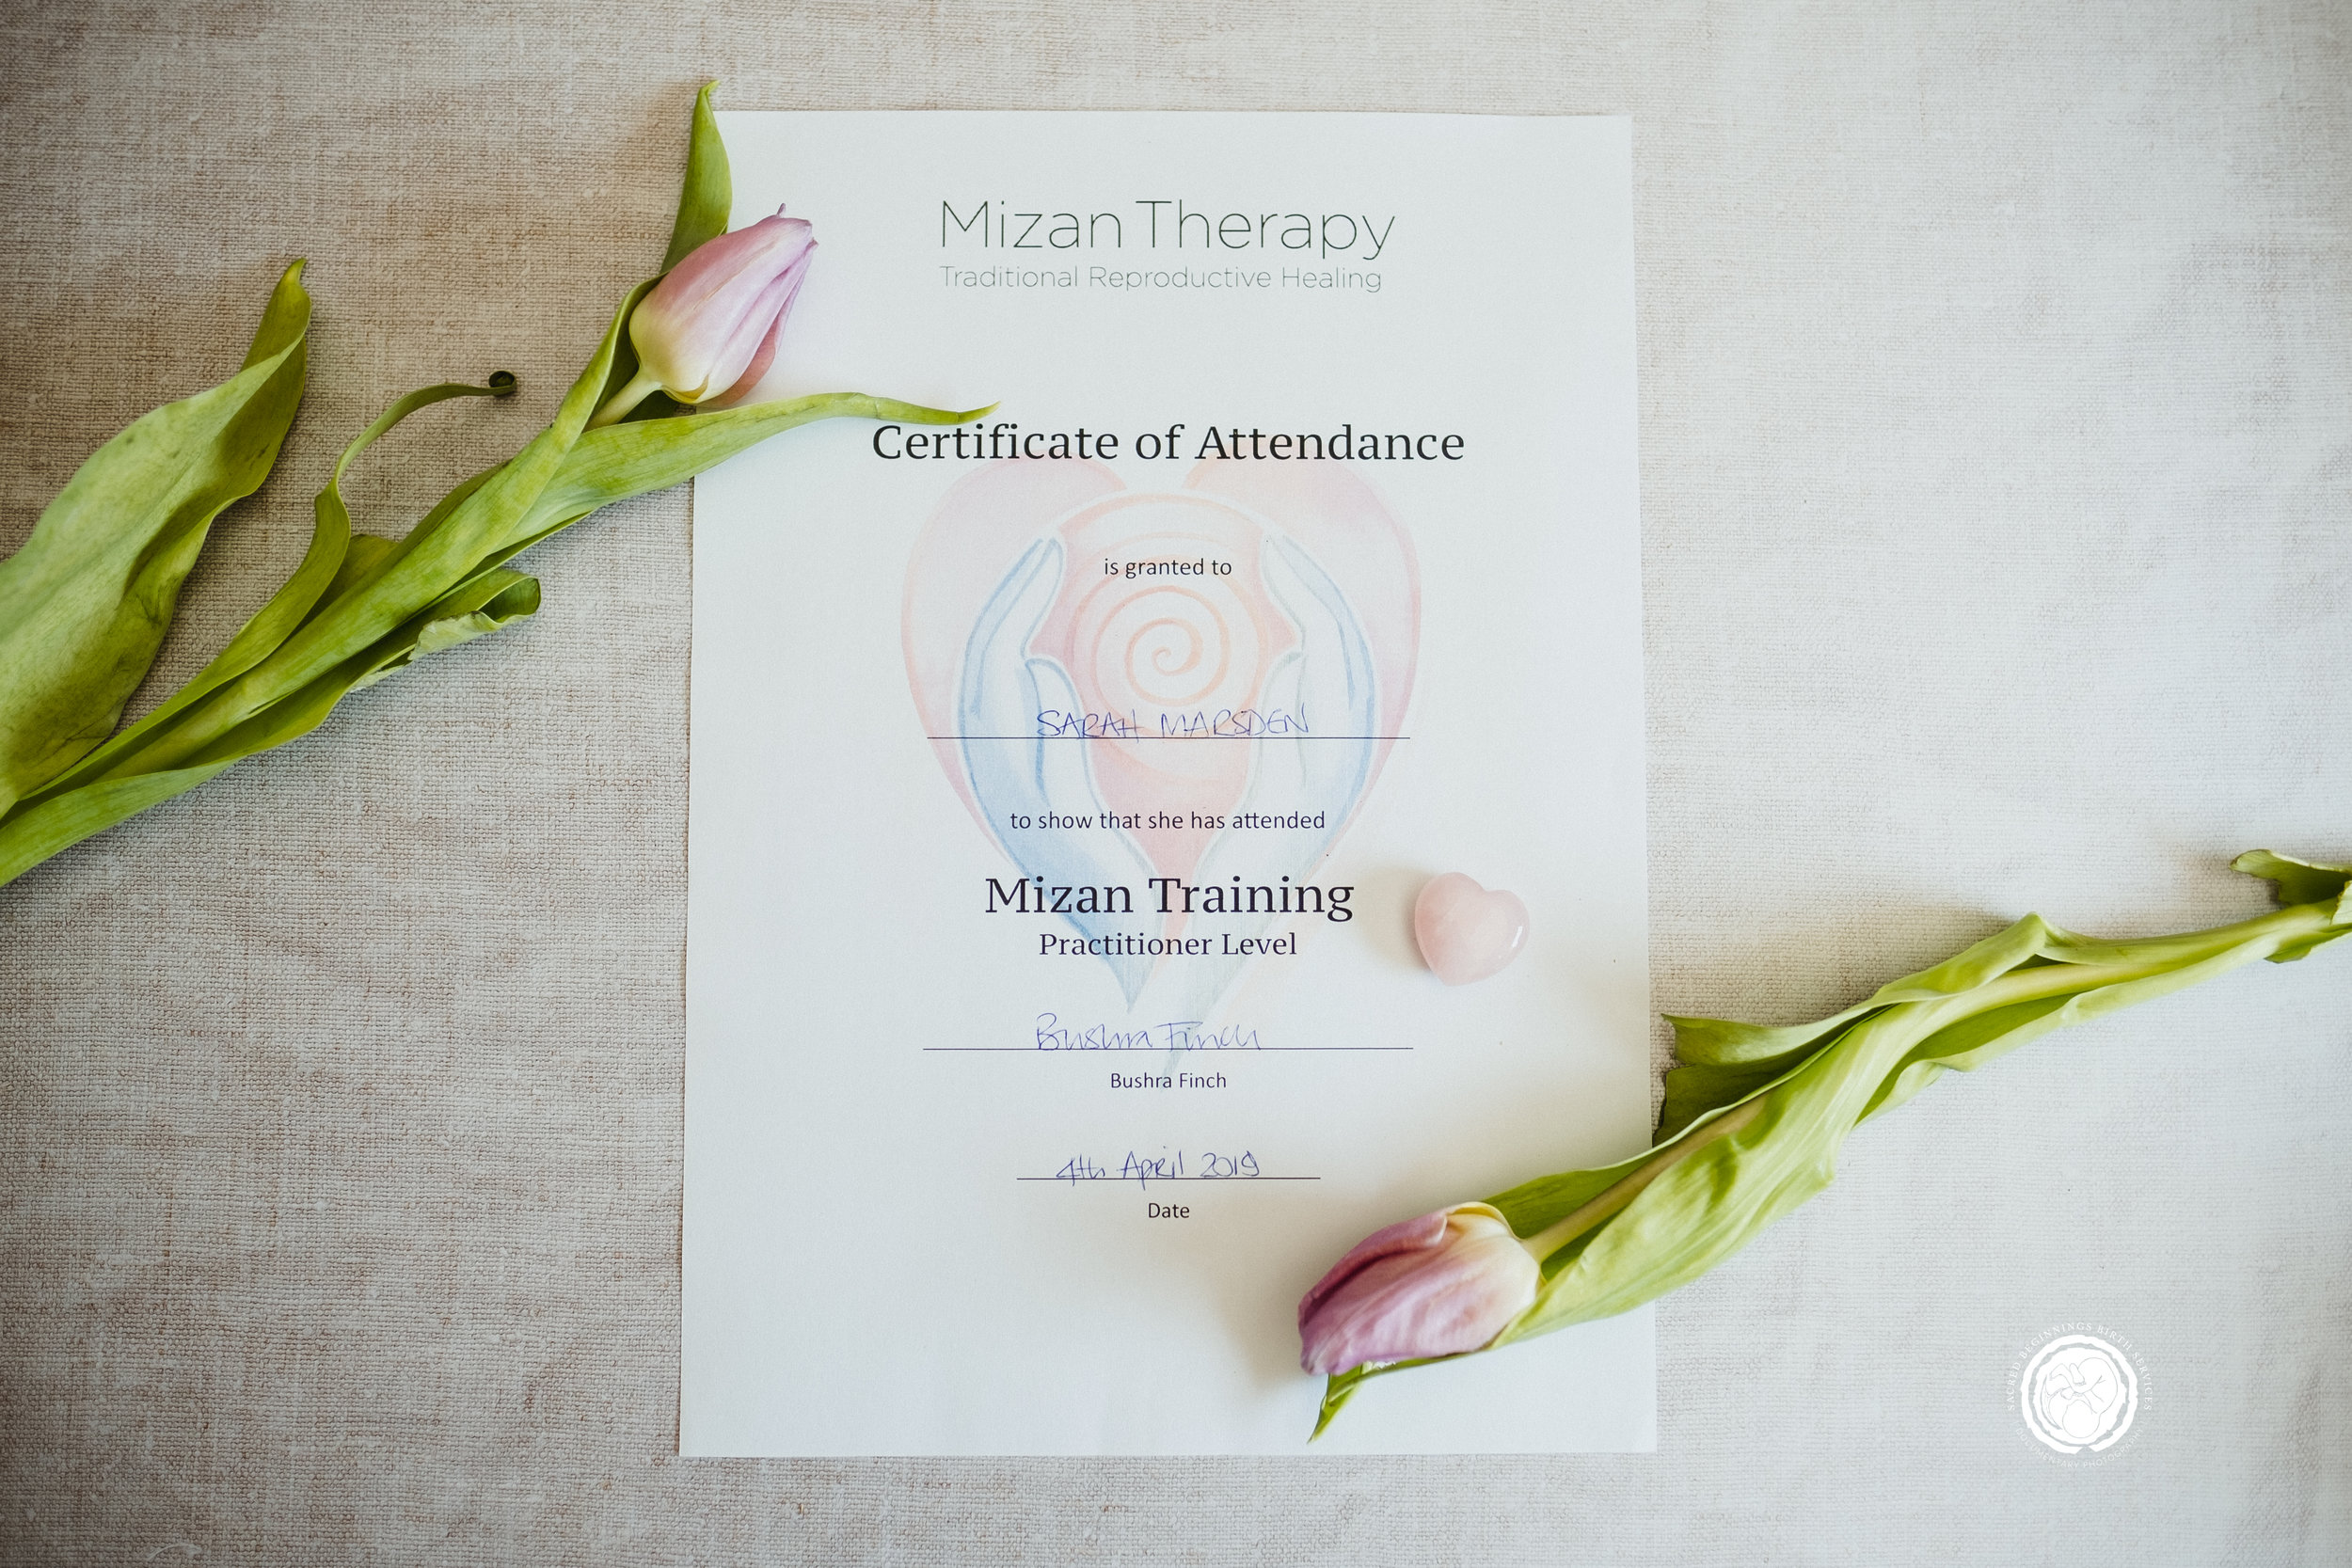 Sarah Marsden received her certificate to be a Mizan Therapy Practitioner for the East Midlands